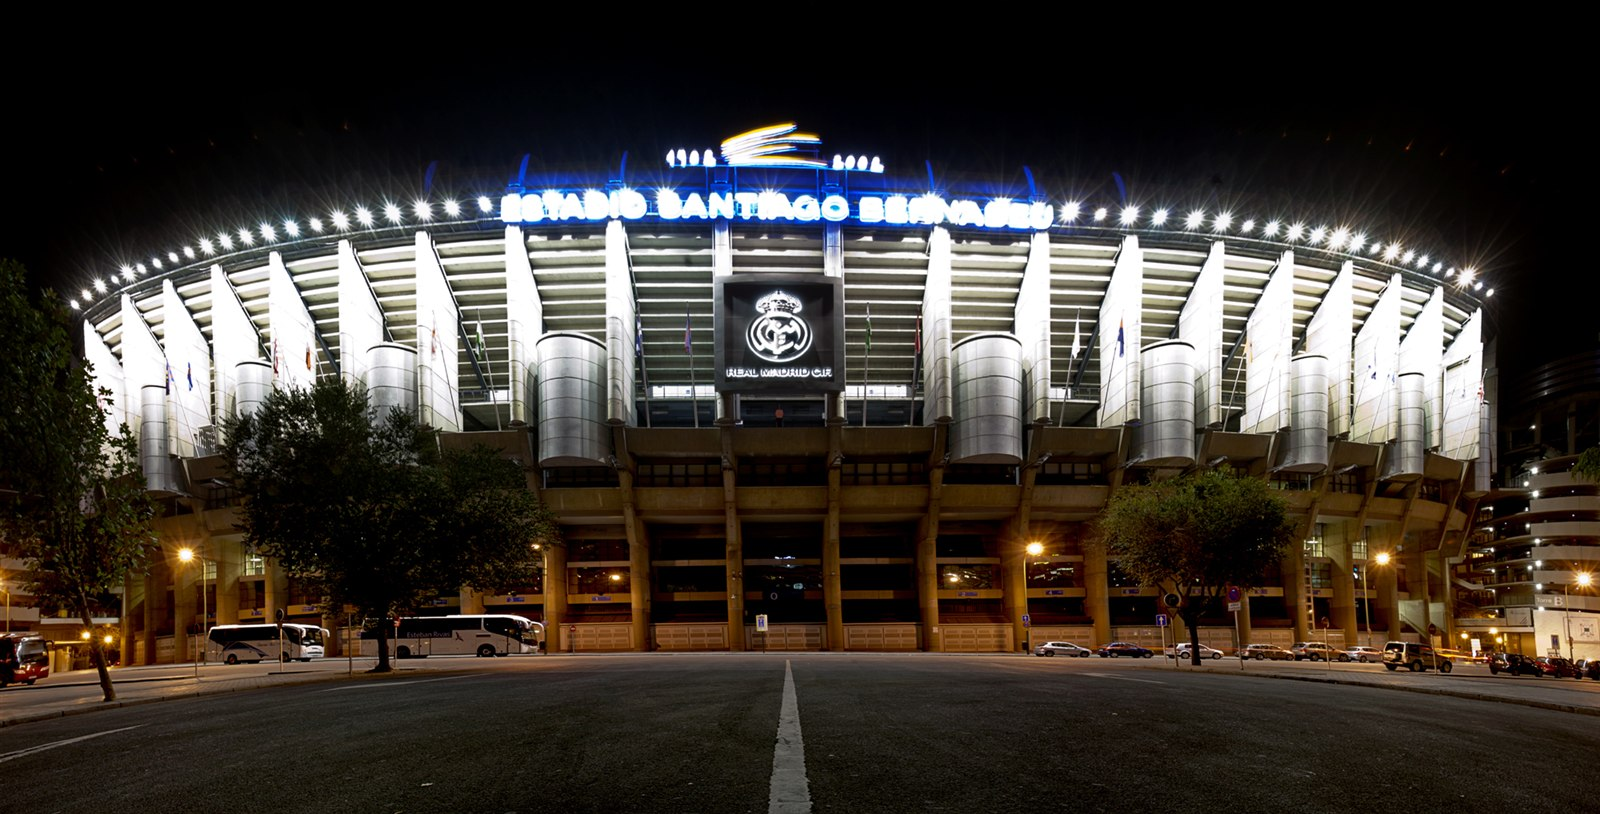 The final of the Libertadores Cup will be played at the Santiago Bernabeu